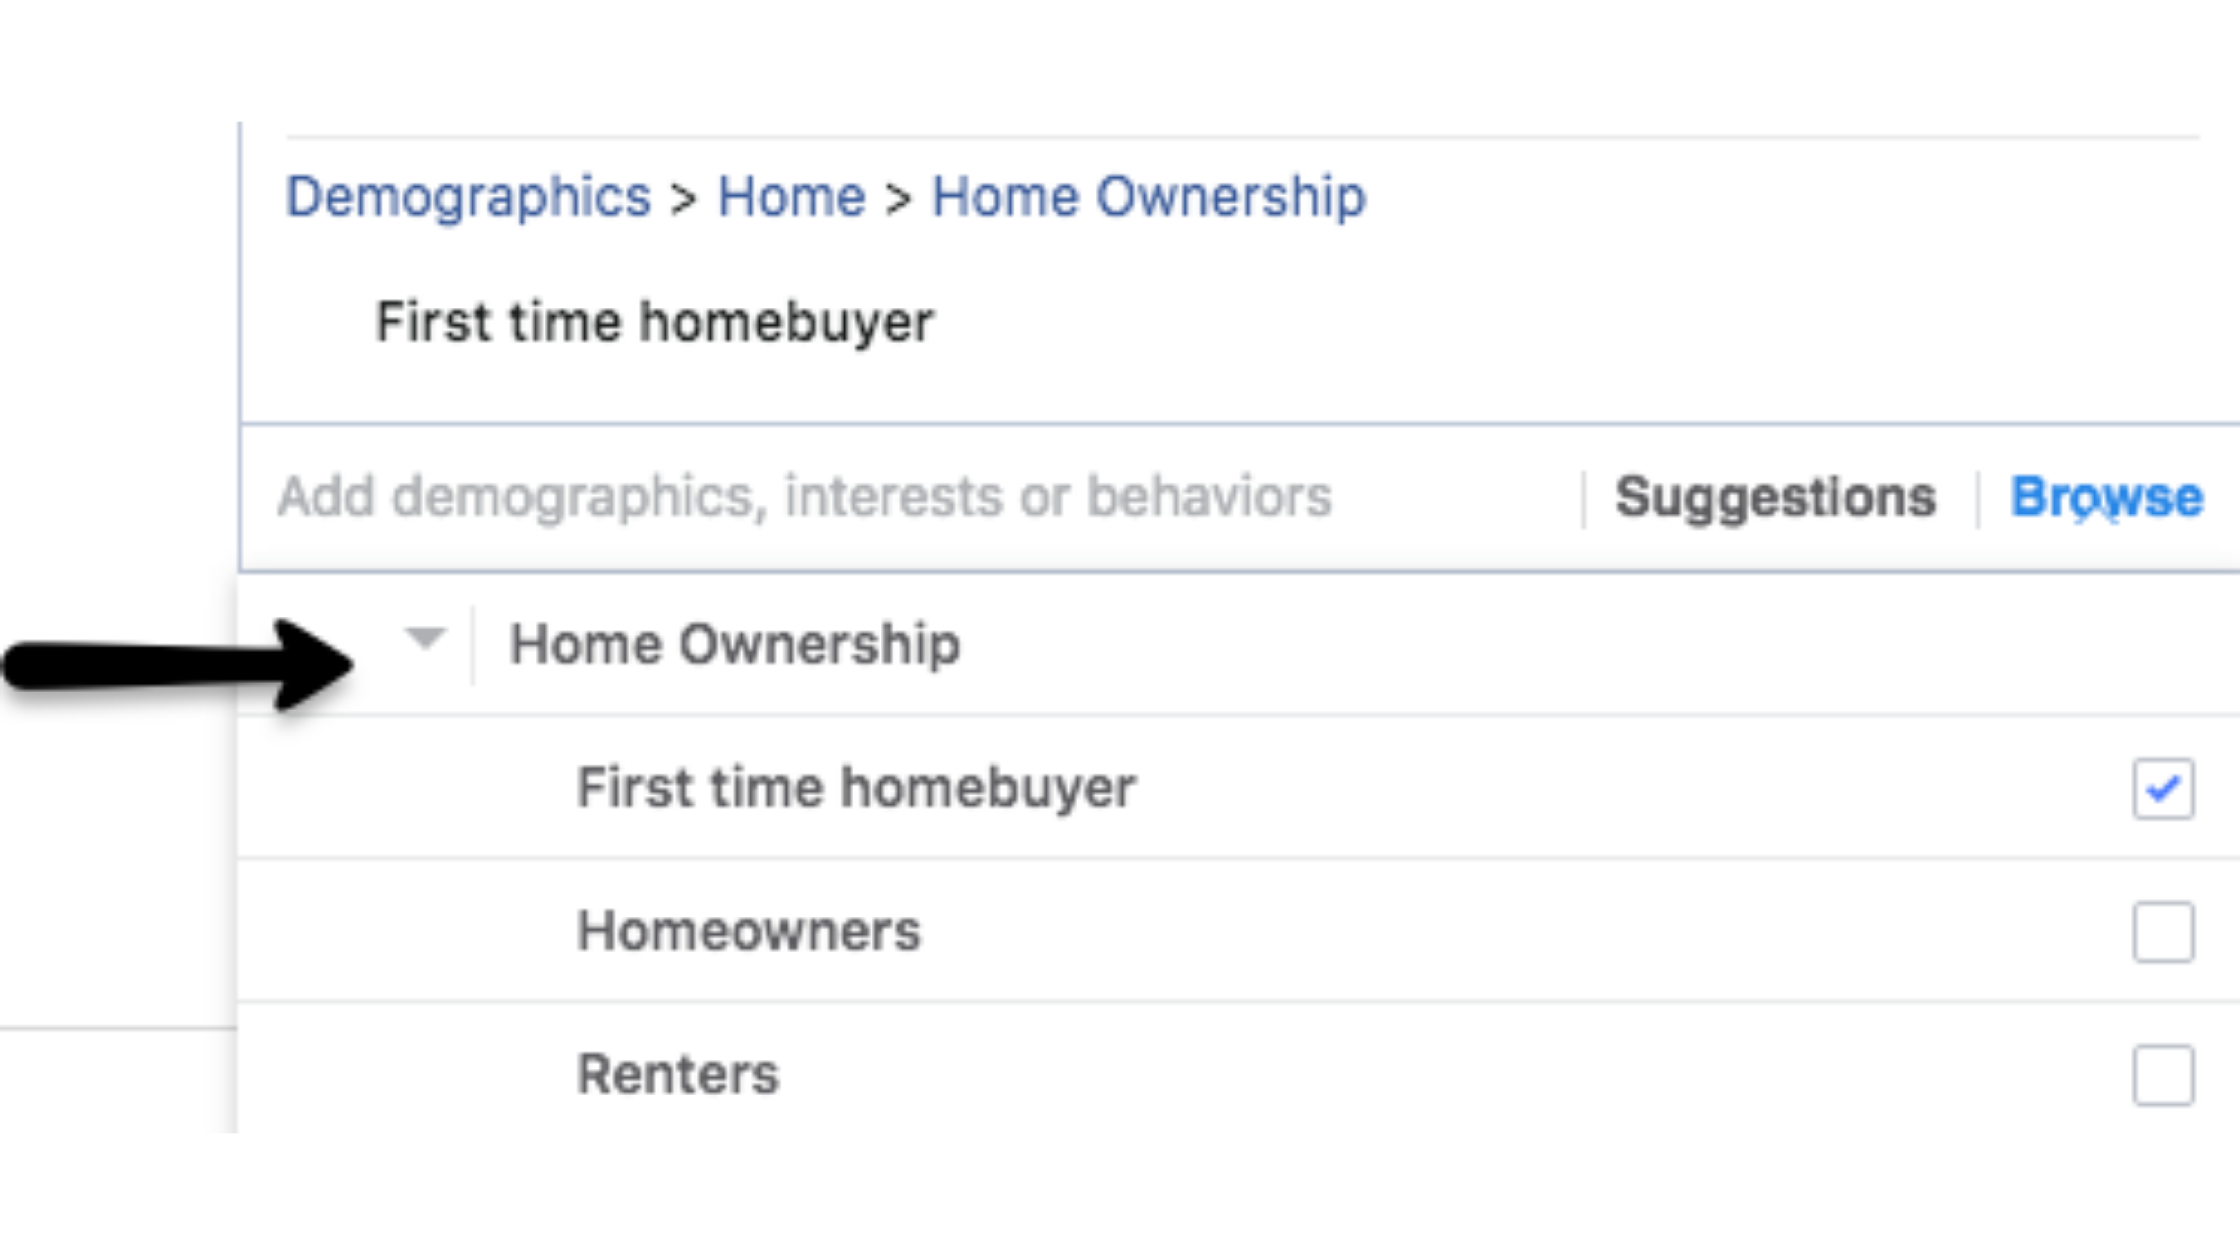 targeting by home ownership status in Facebook ads for real estate